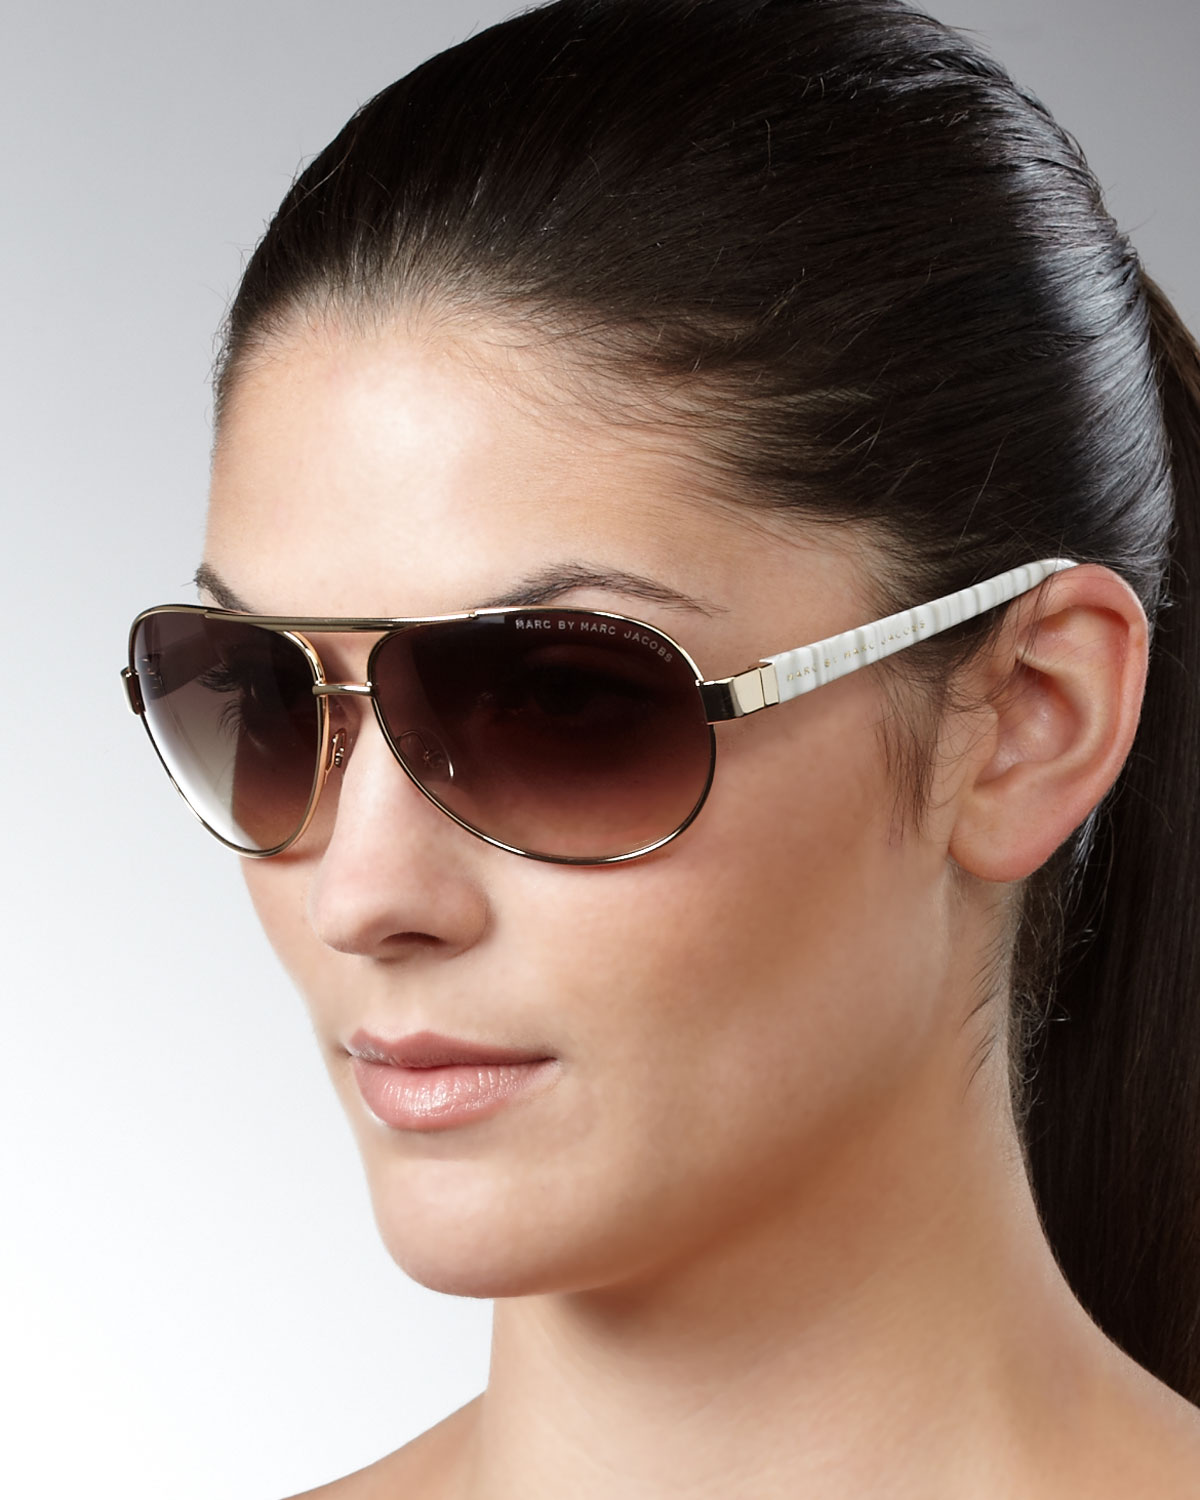 Marc Jacobs Aviator Sunglasses  marc by marc jacobs aviator sunglasses gray stripes in brown lyst